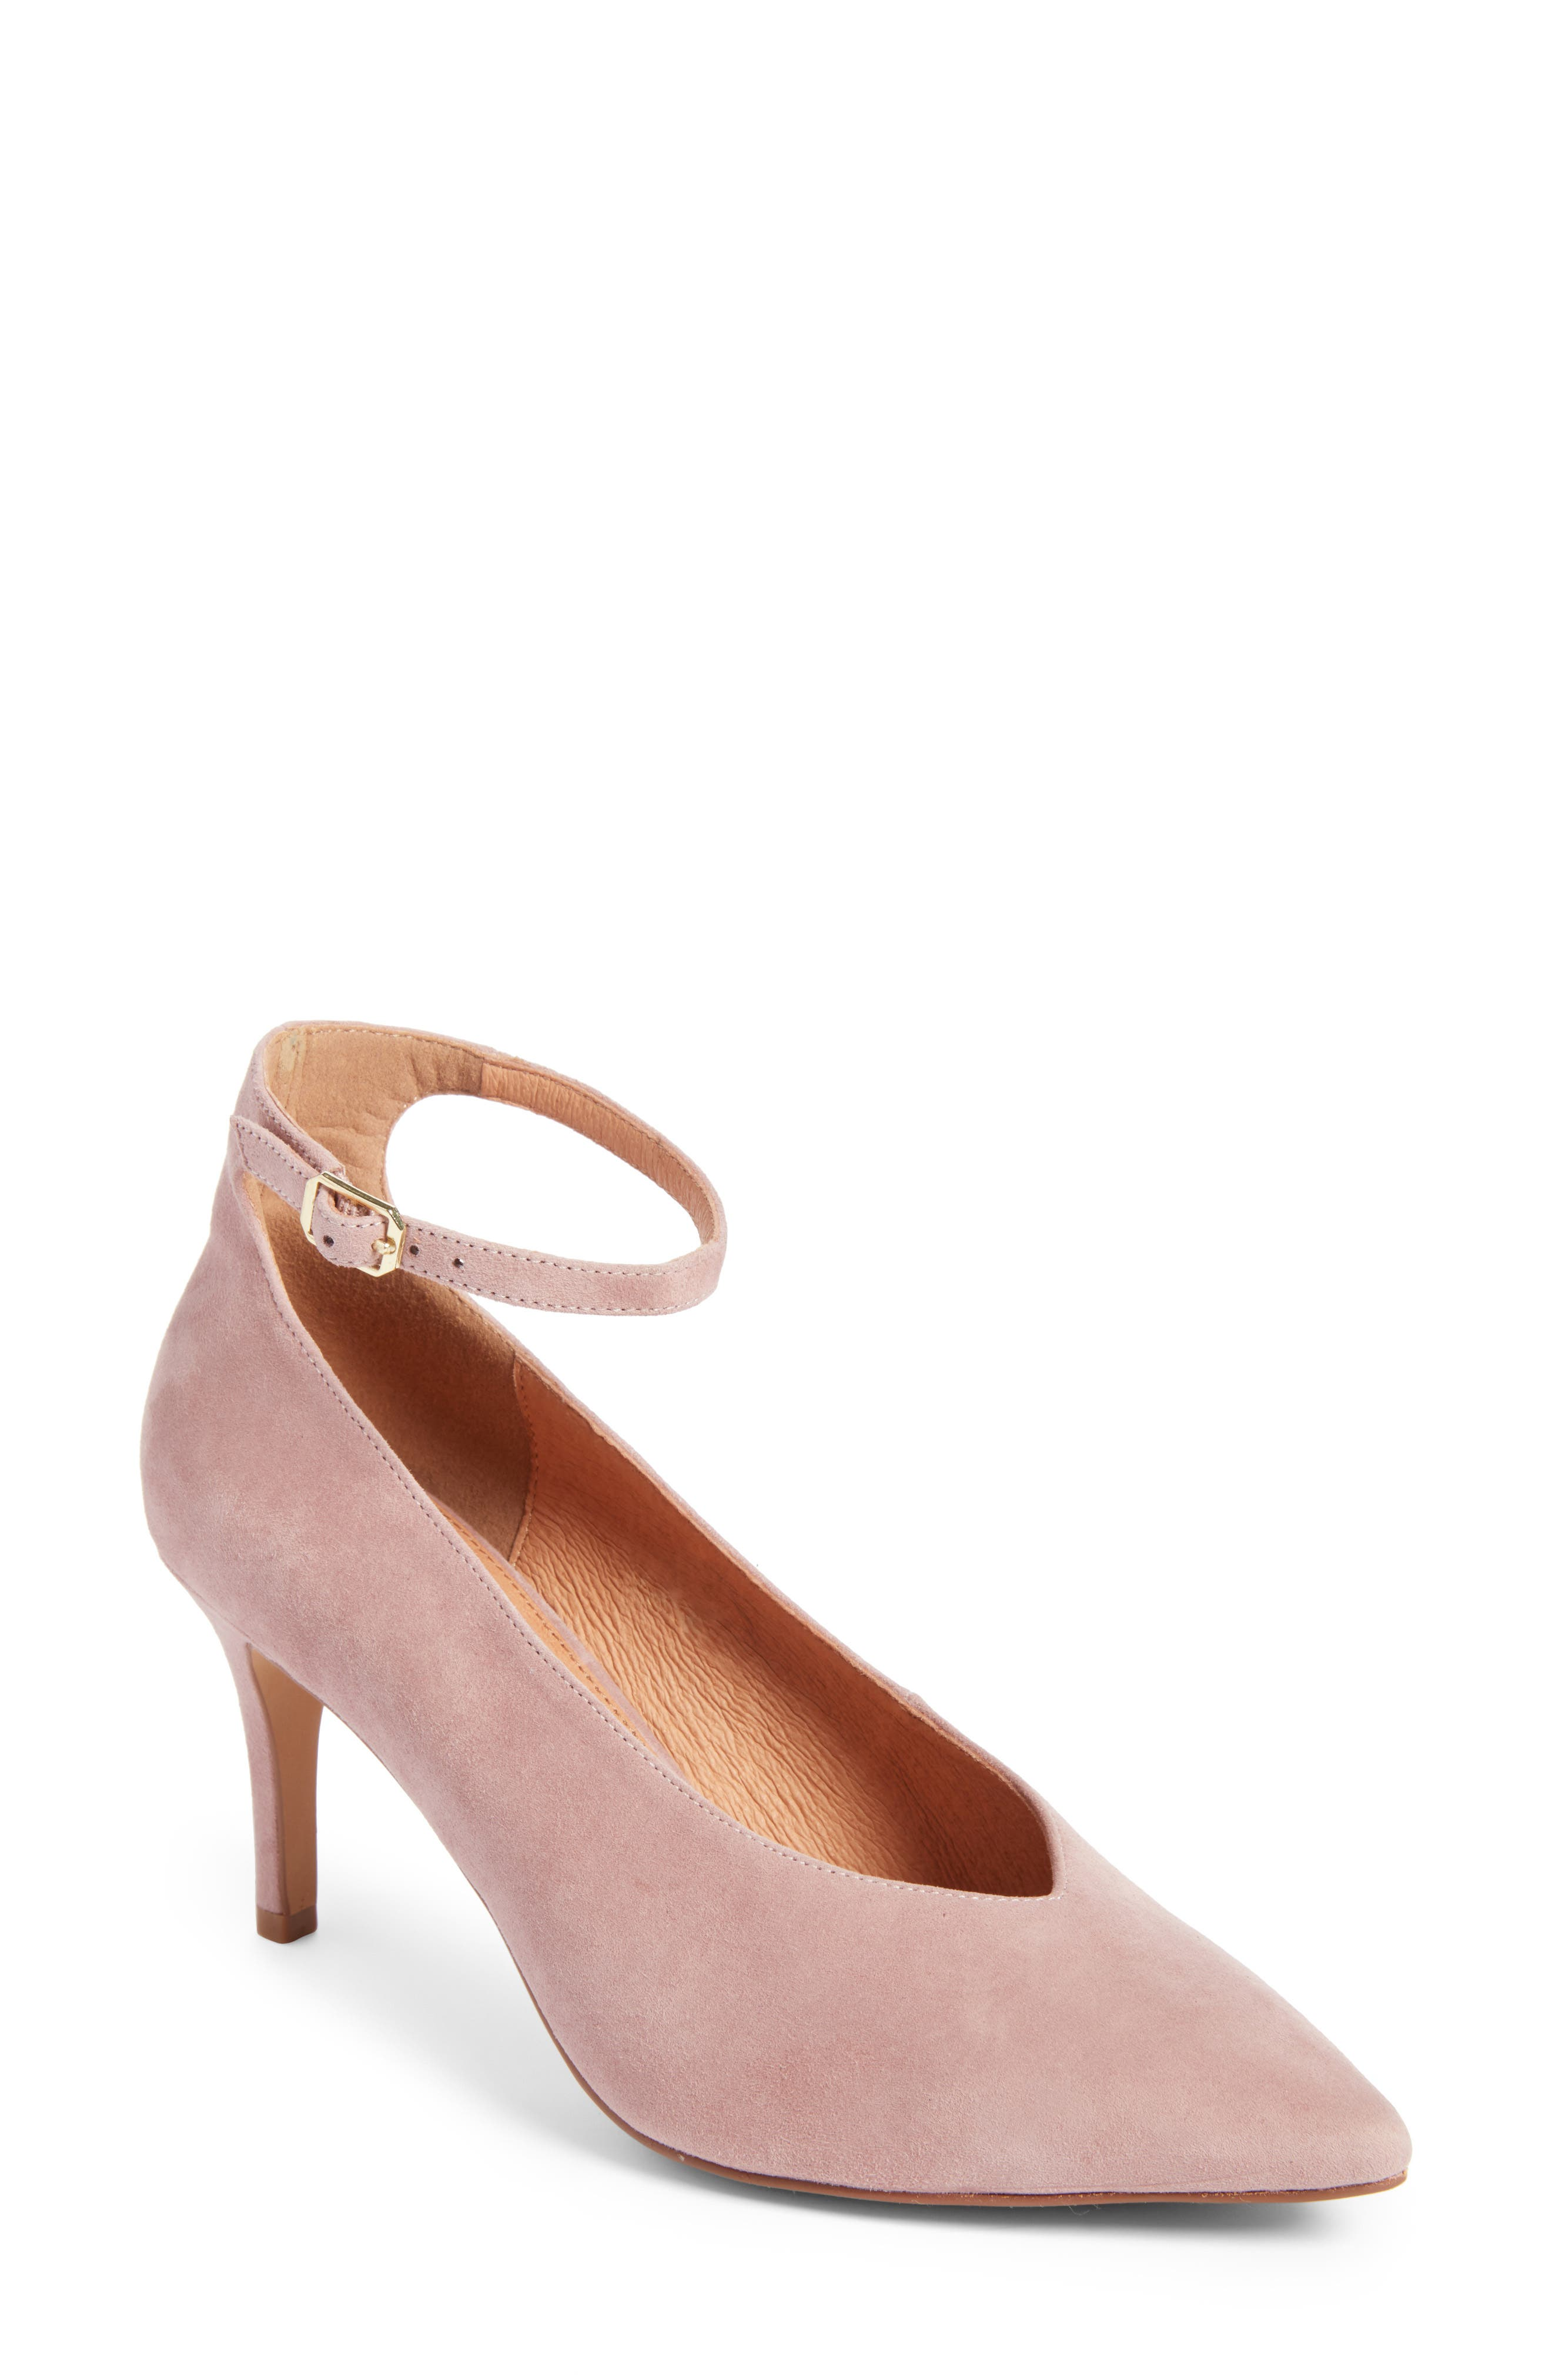 Azaela Ankle Strap Pump,                         Main,                         color, Dark Pink Suede